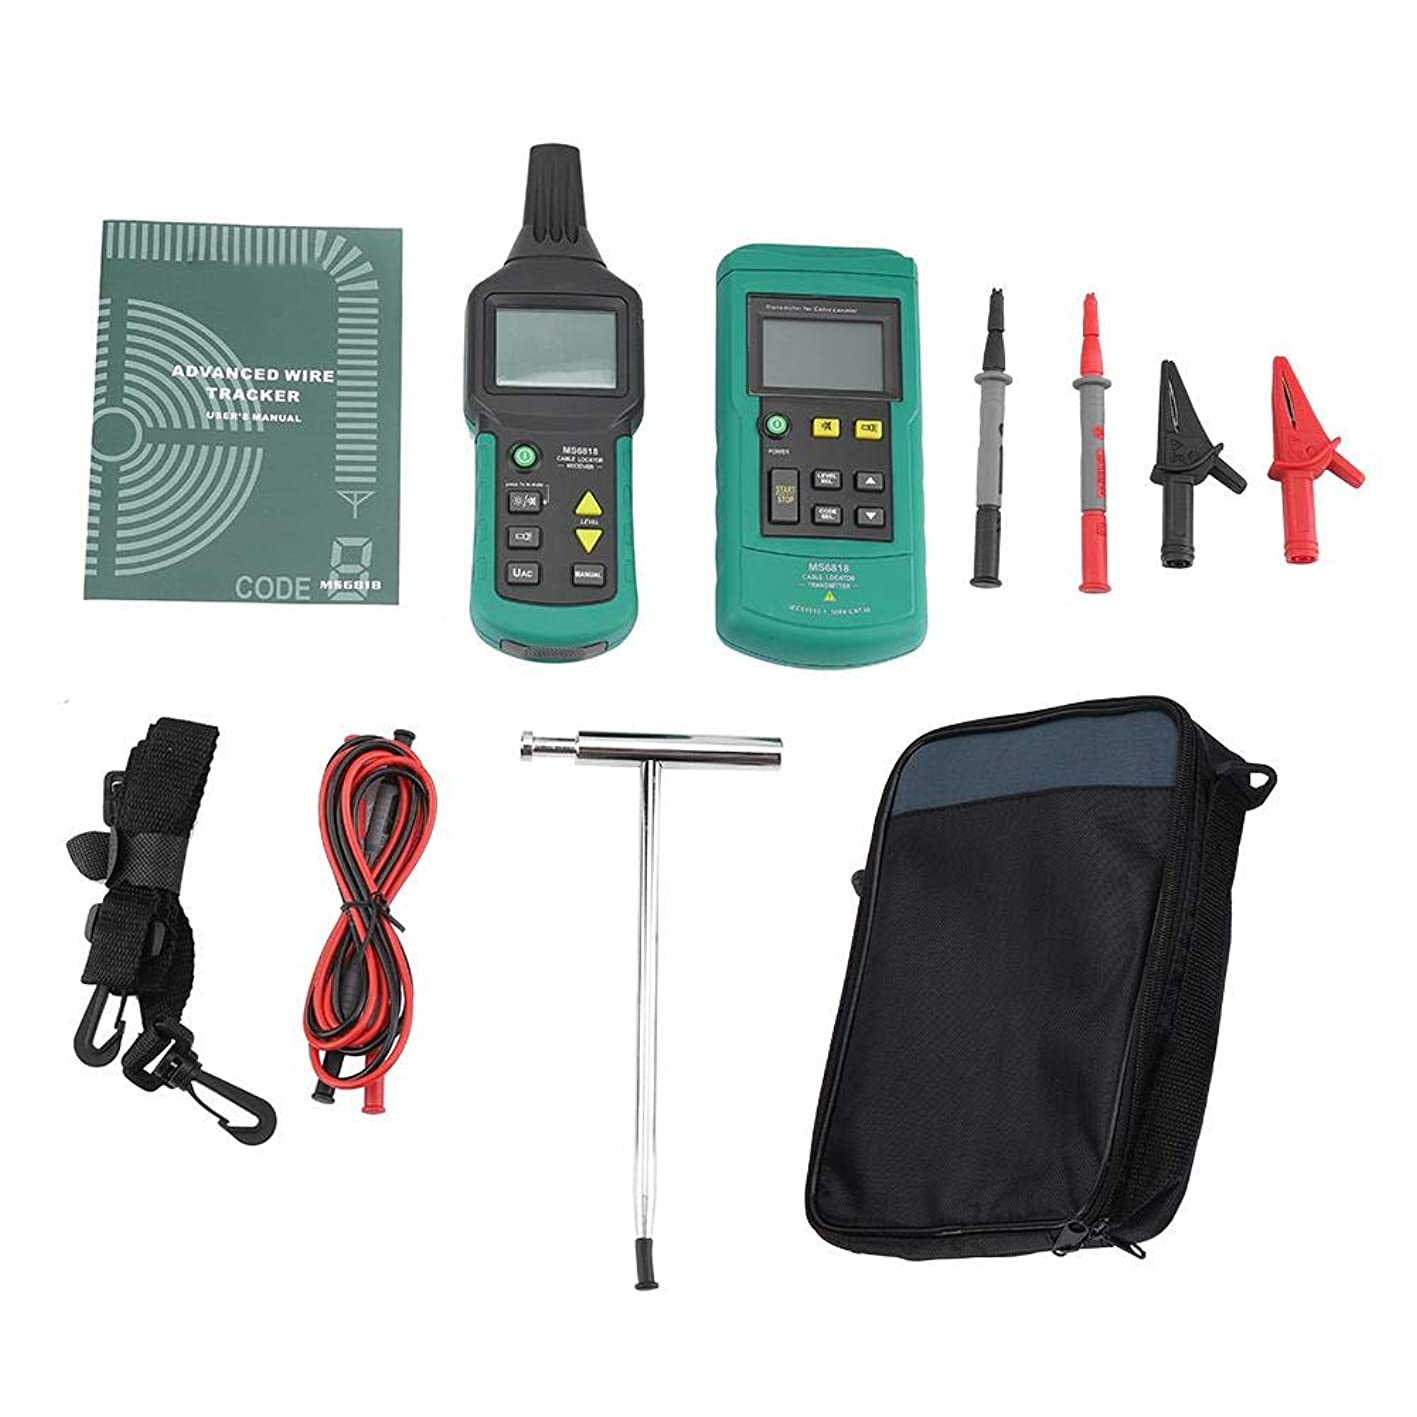 Walfront Cable Locator, MS6818 12V-400V AC/DC Underground Wire Cable Locator Metal Pipe Detector Tester Line Tracker Cable Location Device Easily Cable Finder lczyczbpilj416